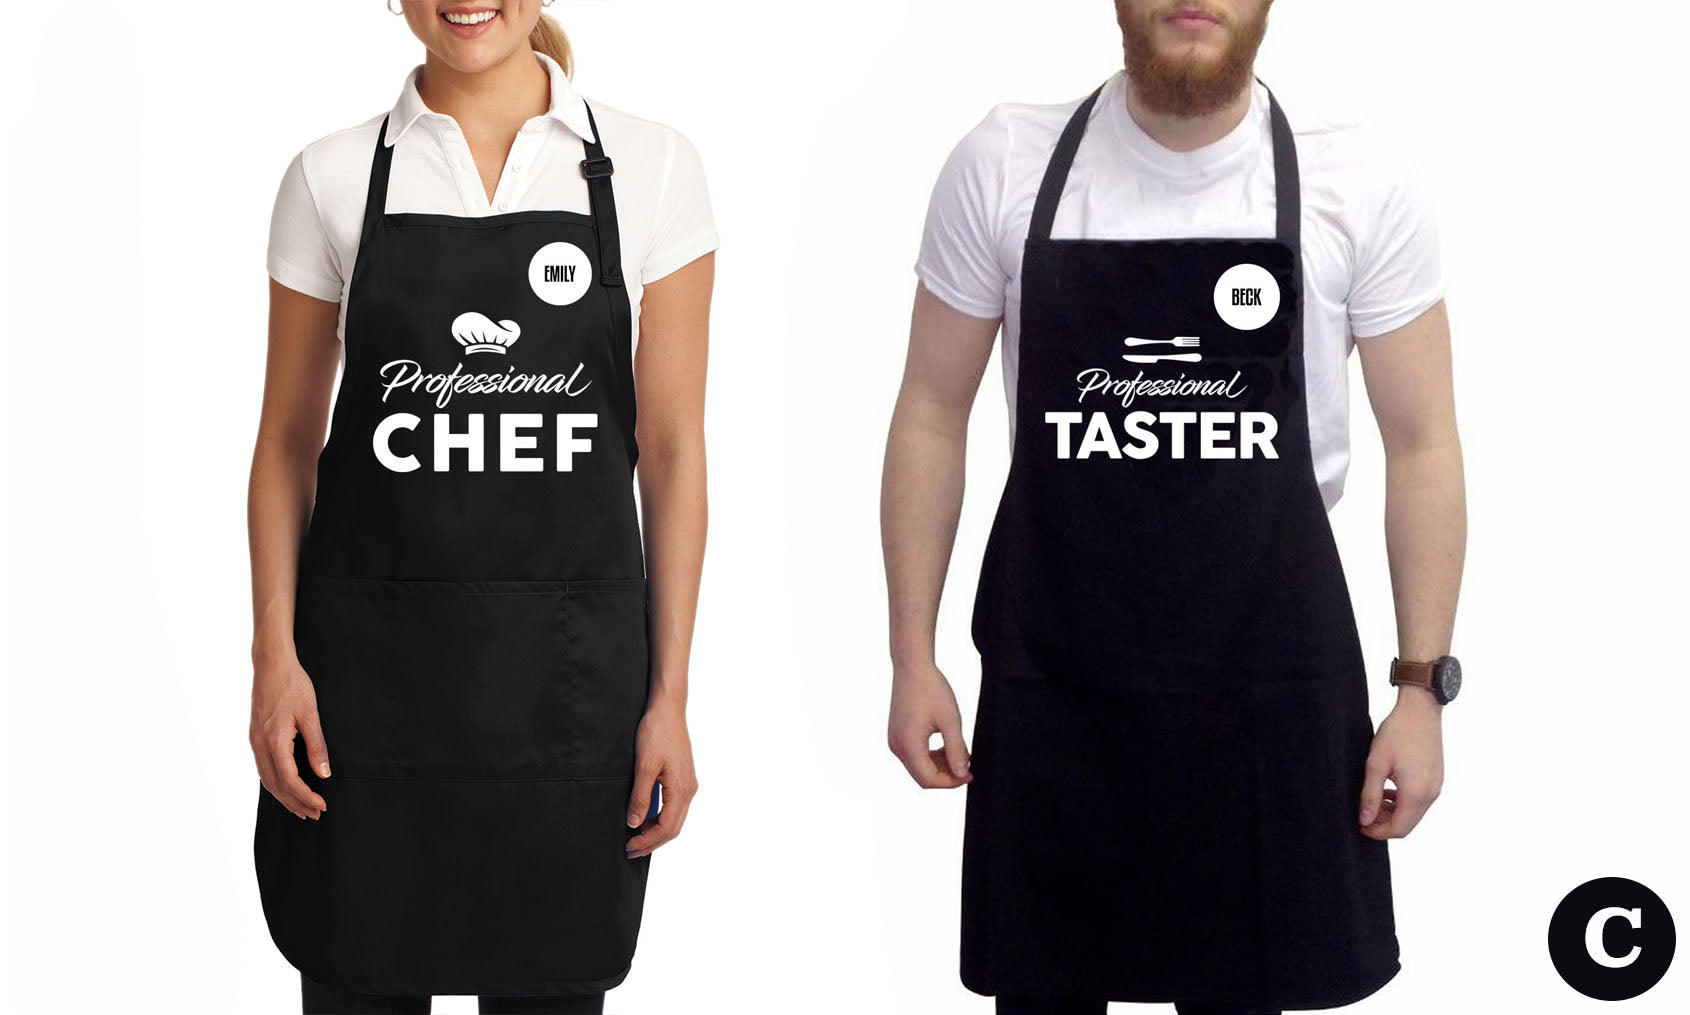 Professional chef and taster.jpg